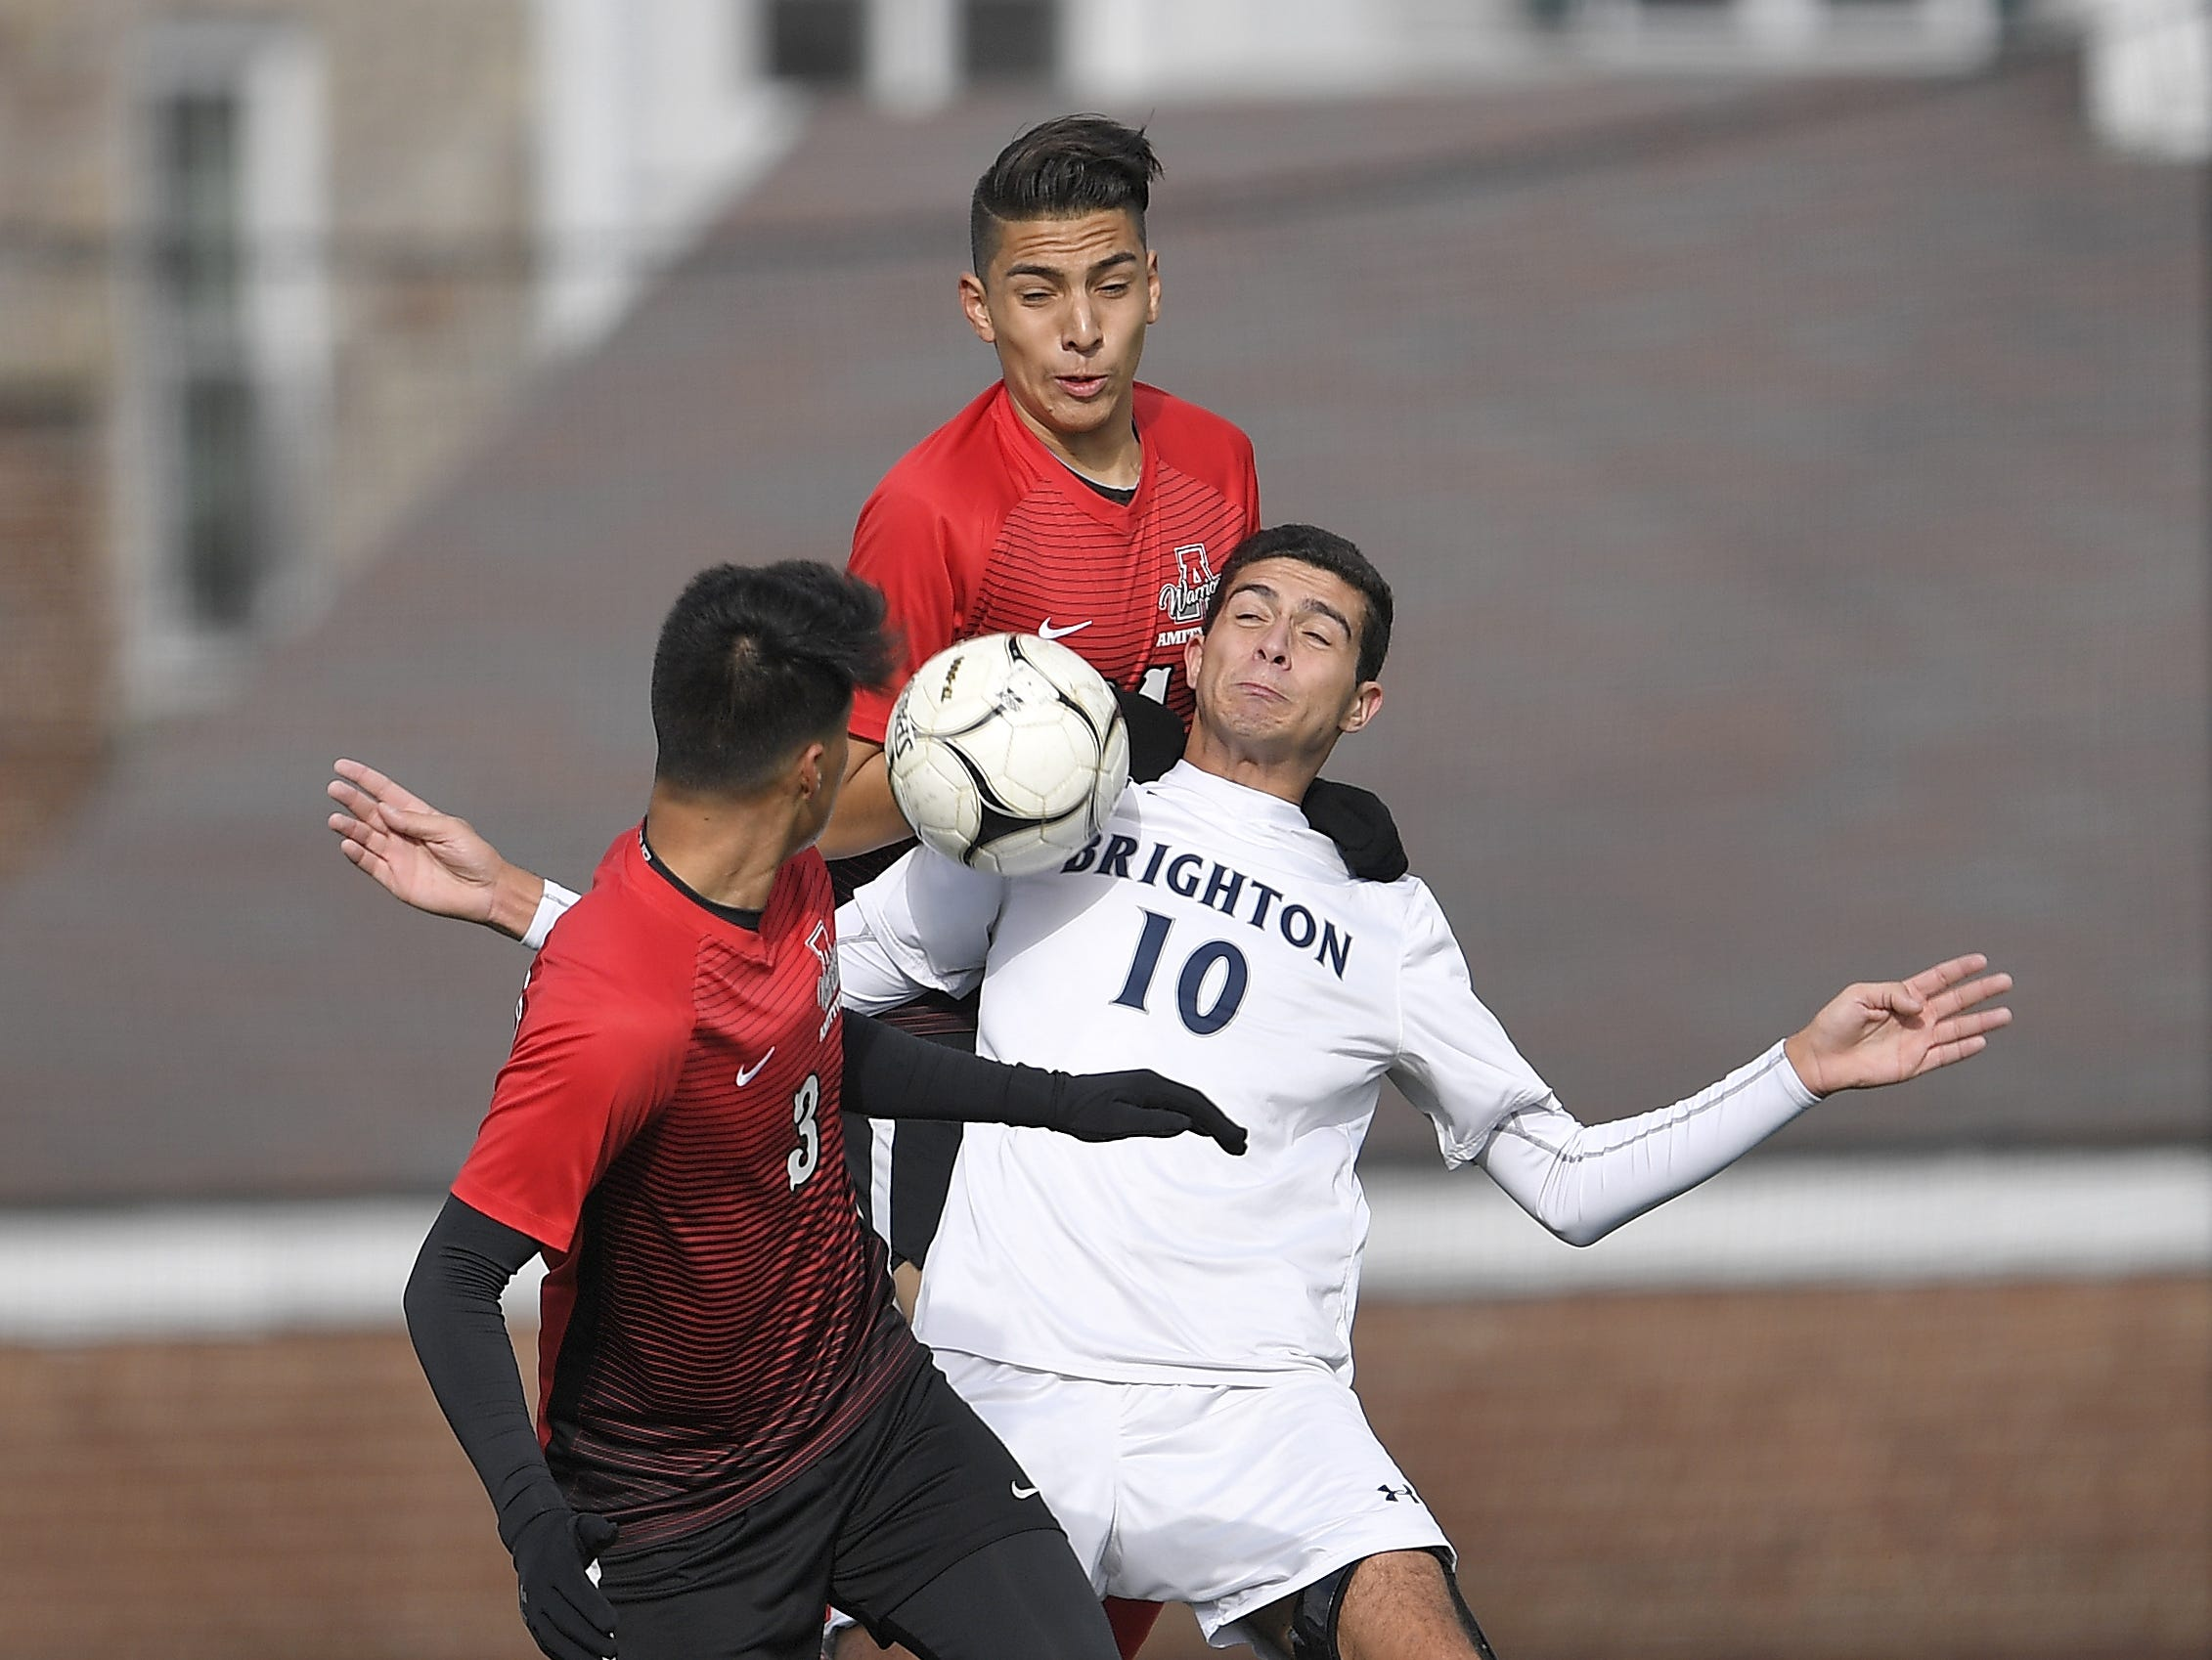 Brighton's Caio De Medeiros (10) tries to control the ball between Amityville's Carlos Ponce, top, and Angel Zavala during a Class A semifinal at the NYSPHSAA Boys Soccer Championships in Newburgh, N.Y., Saturday, Nov. 10, 2018.